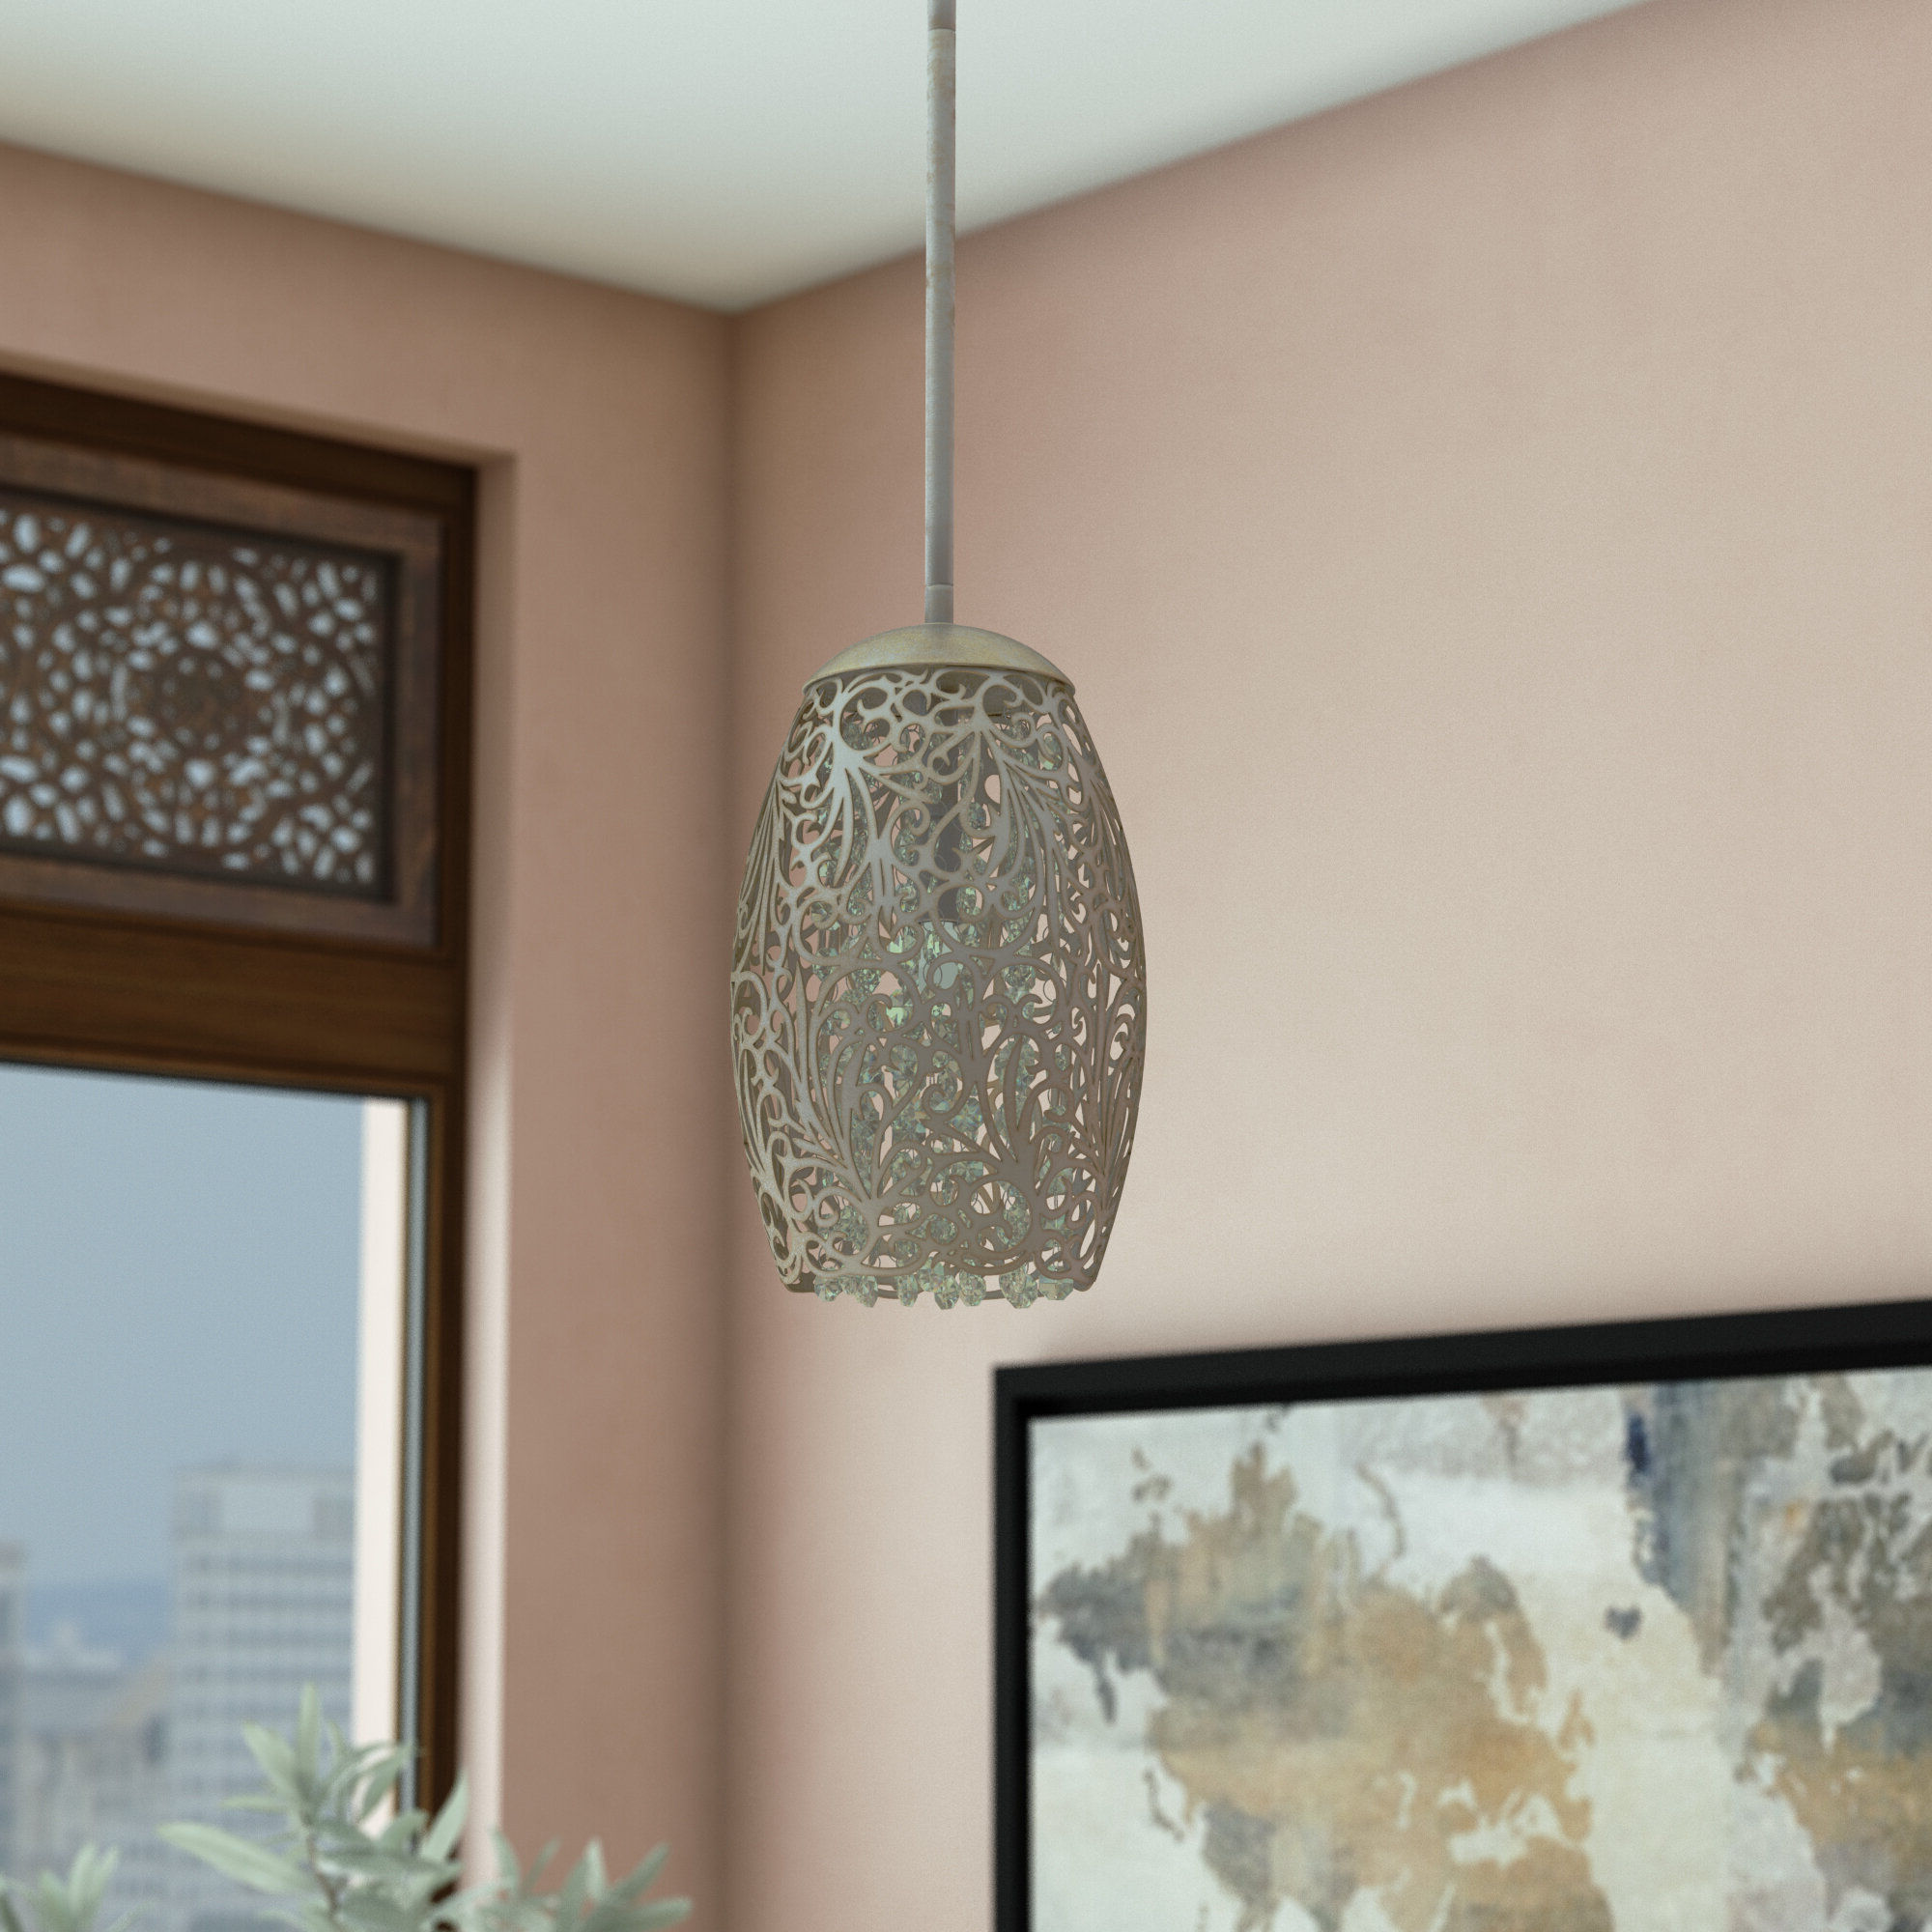 Giacinta 1 Light Single Bell Pendants Throughout Well Known Kraker 1 Light Single Cylinder Pendant (View 7 of 25)